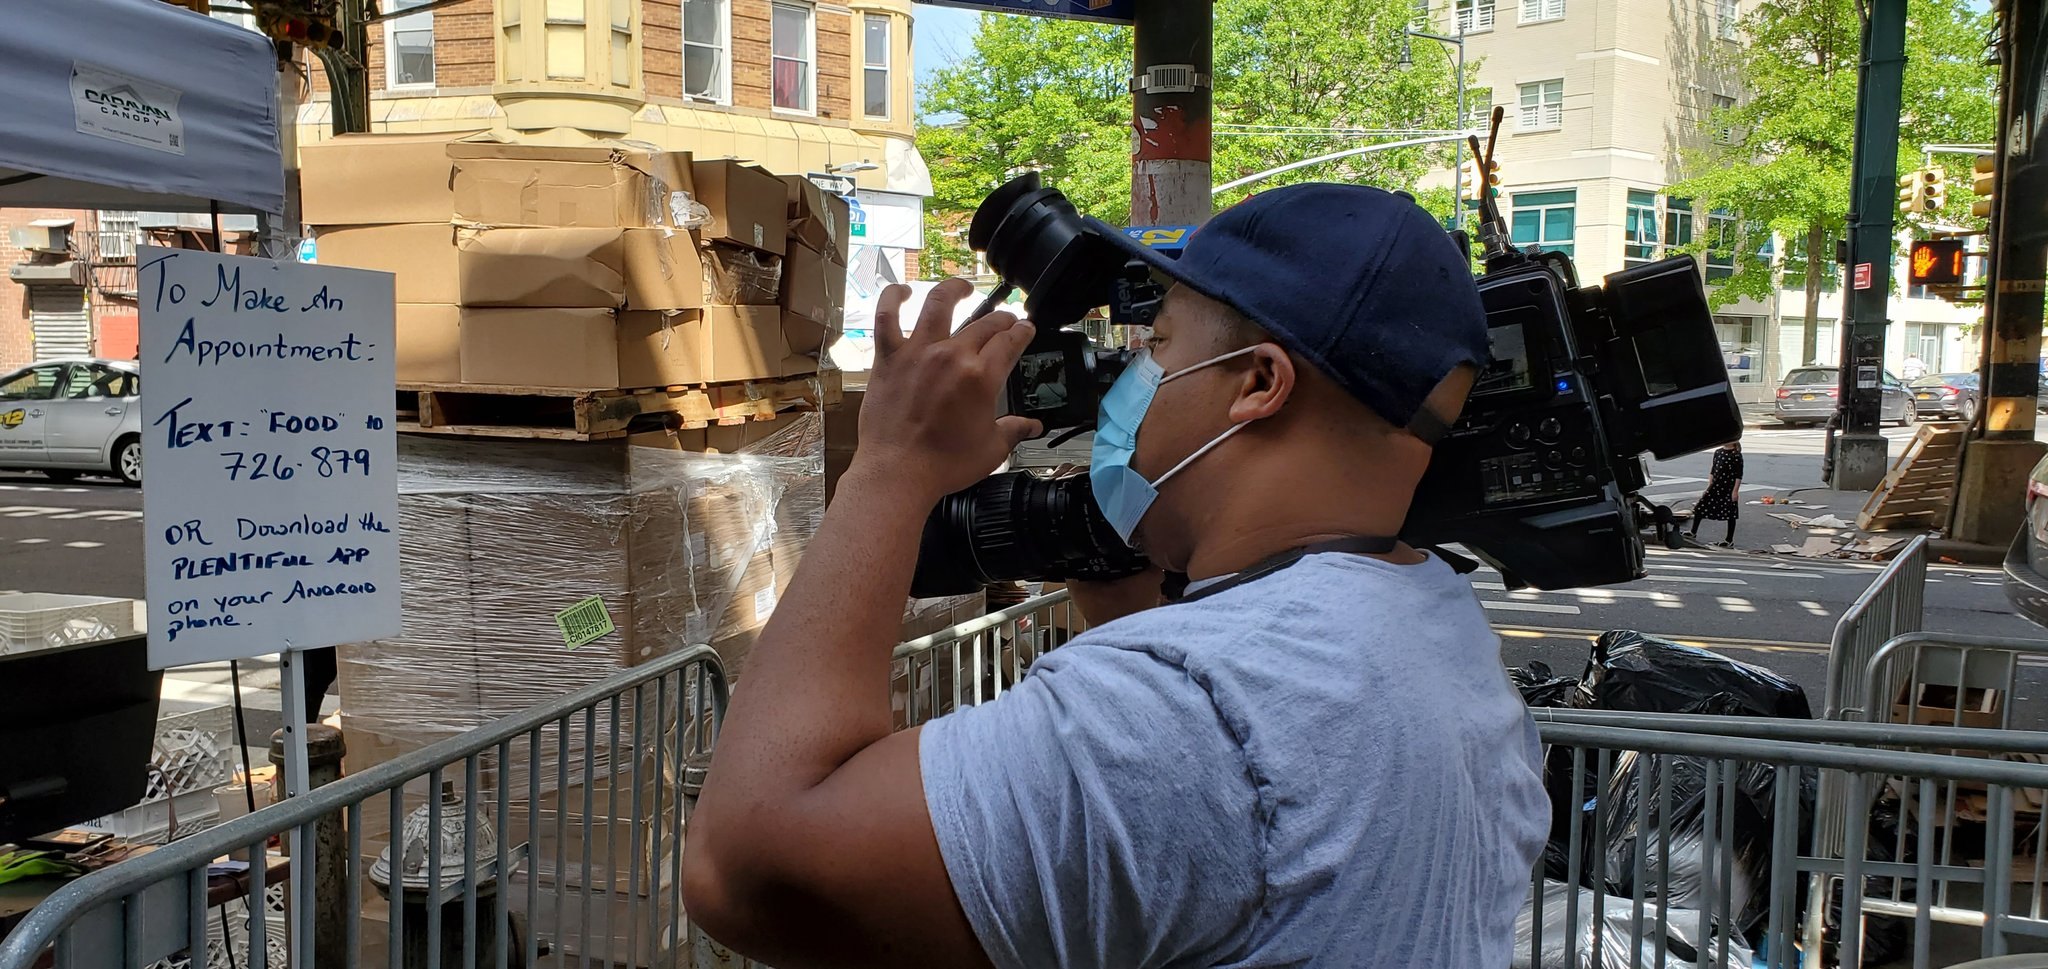 Christian L Braxton Reporter of News12 Brooklyn focusing his camera at Masbia of Boro Park during covid-19 pandemic